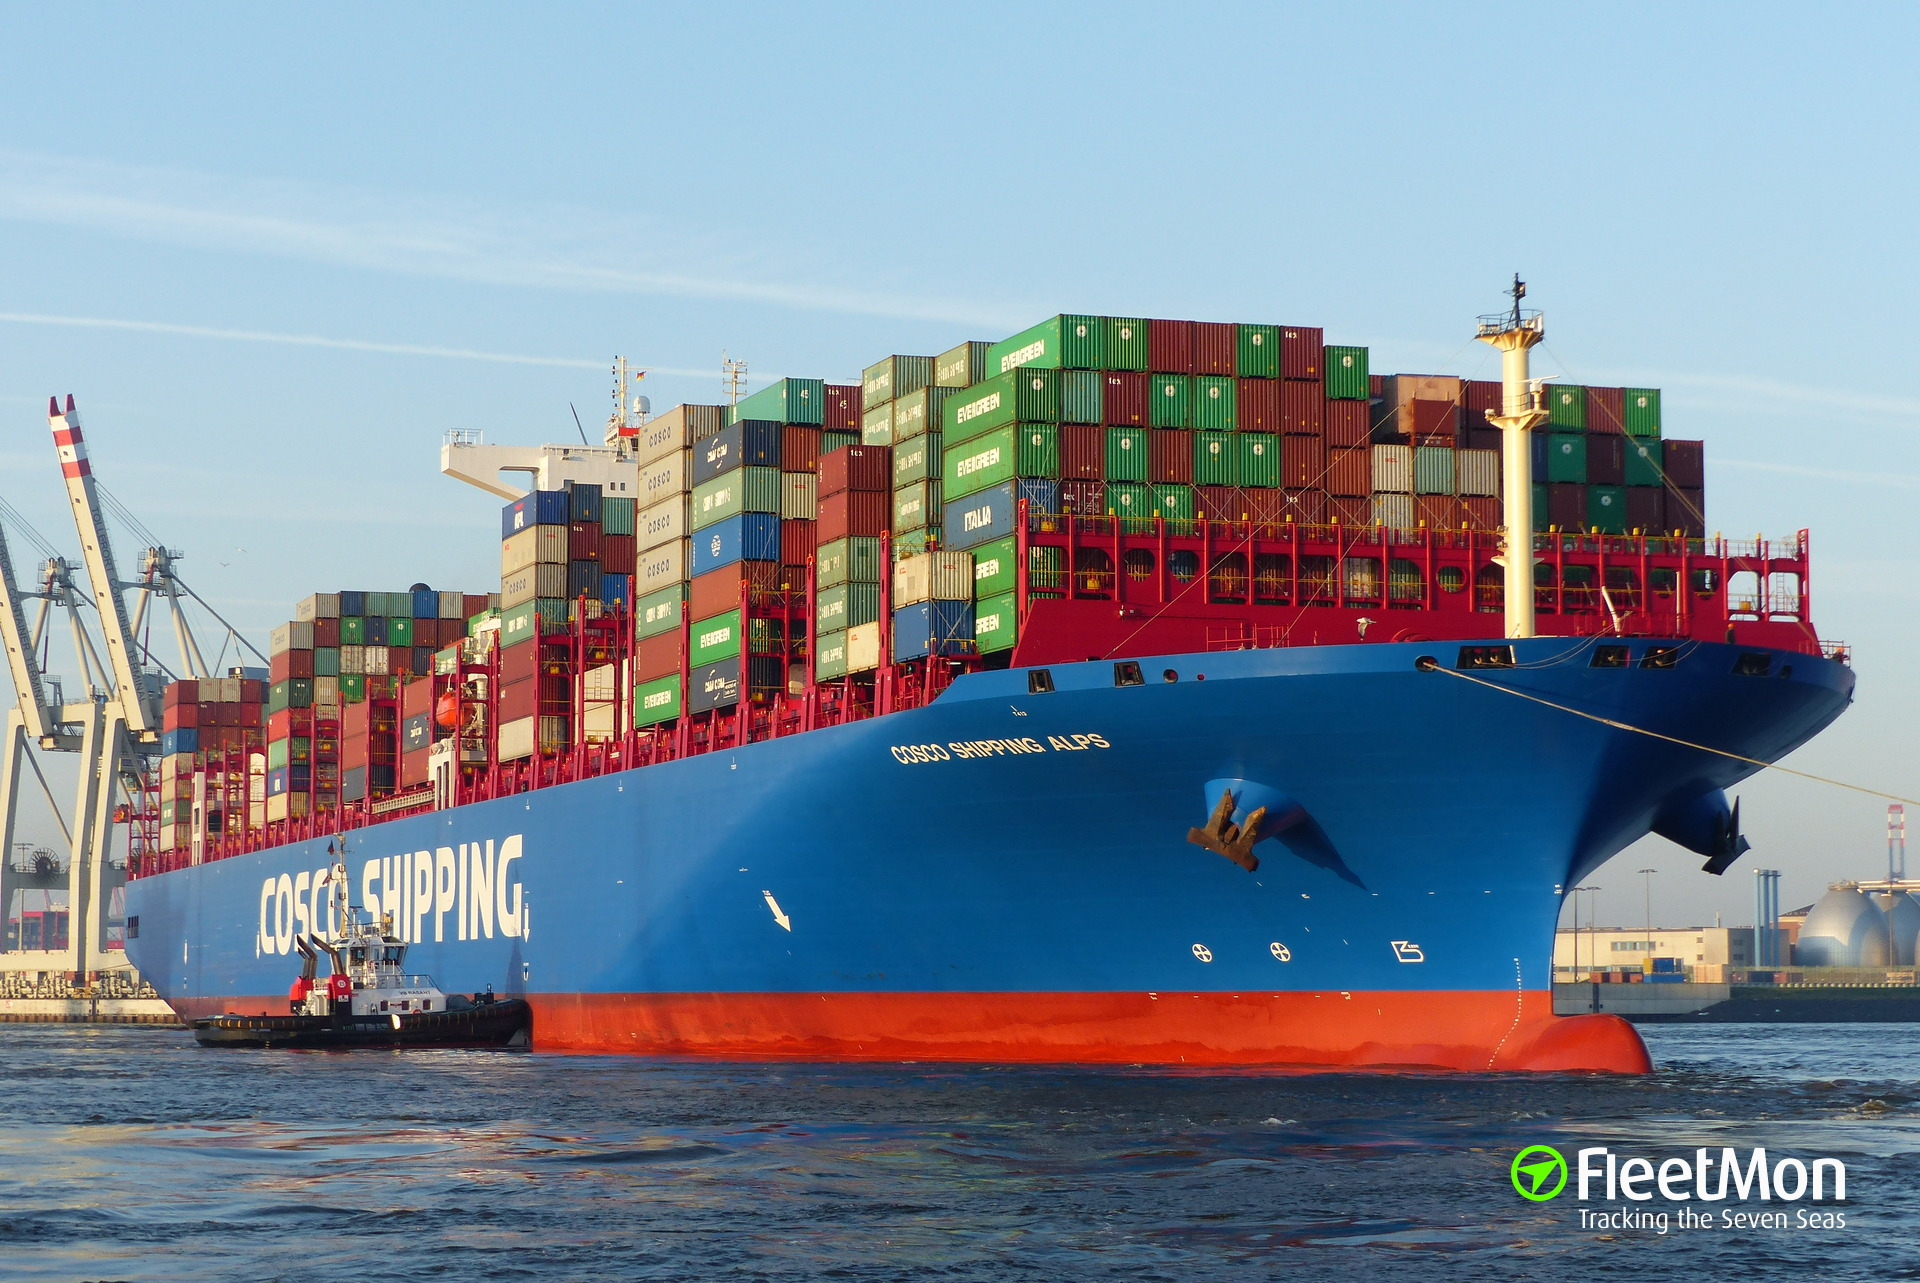 New Technical Consultancy for Fuel Efficient Shipping Launched